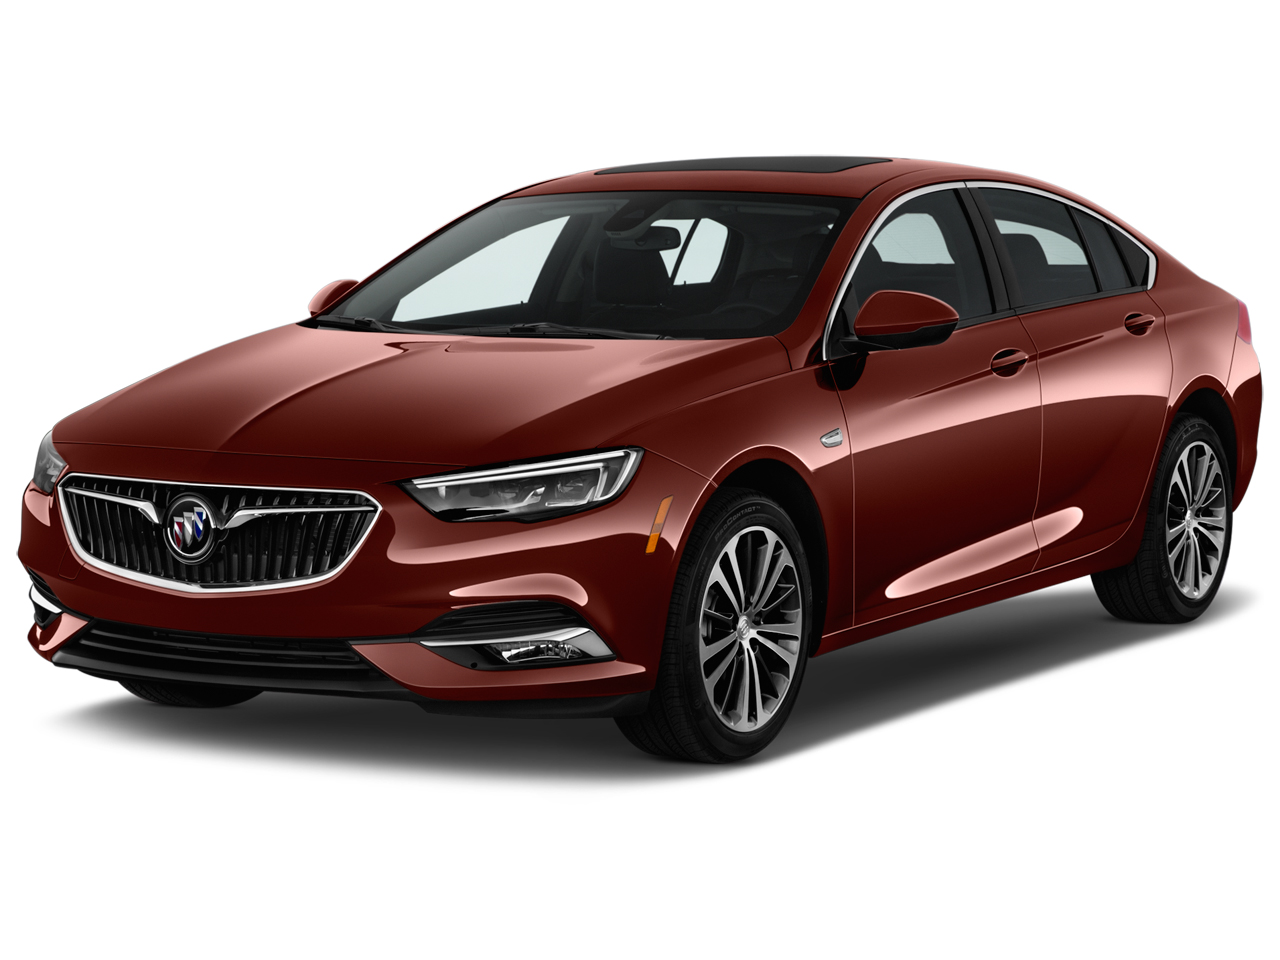 2018 Buick Regal Sportback Review, Ratings, Specs, Prices, and Photos - The Car Connection